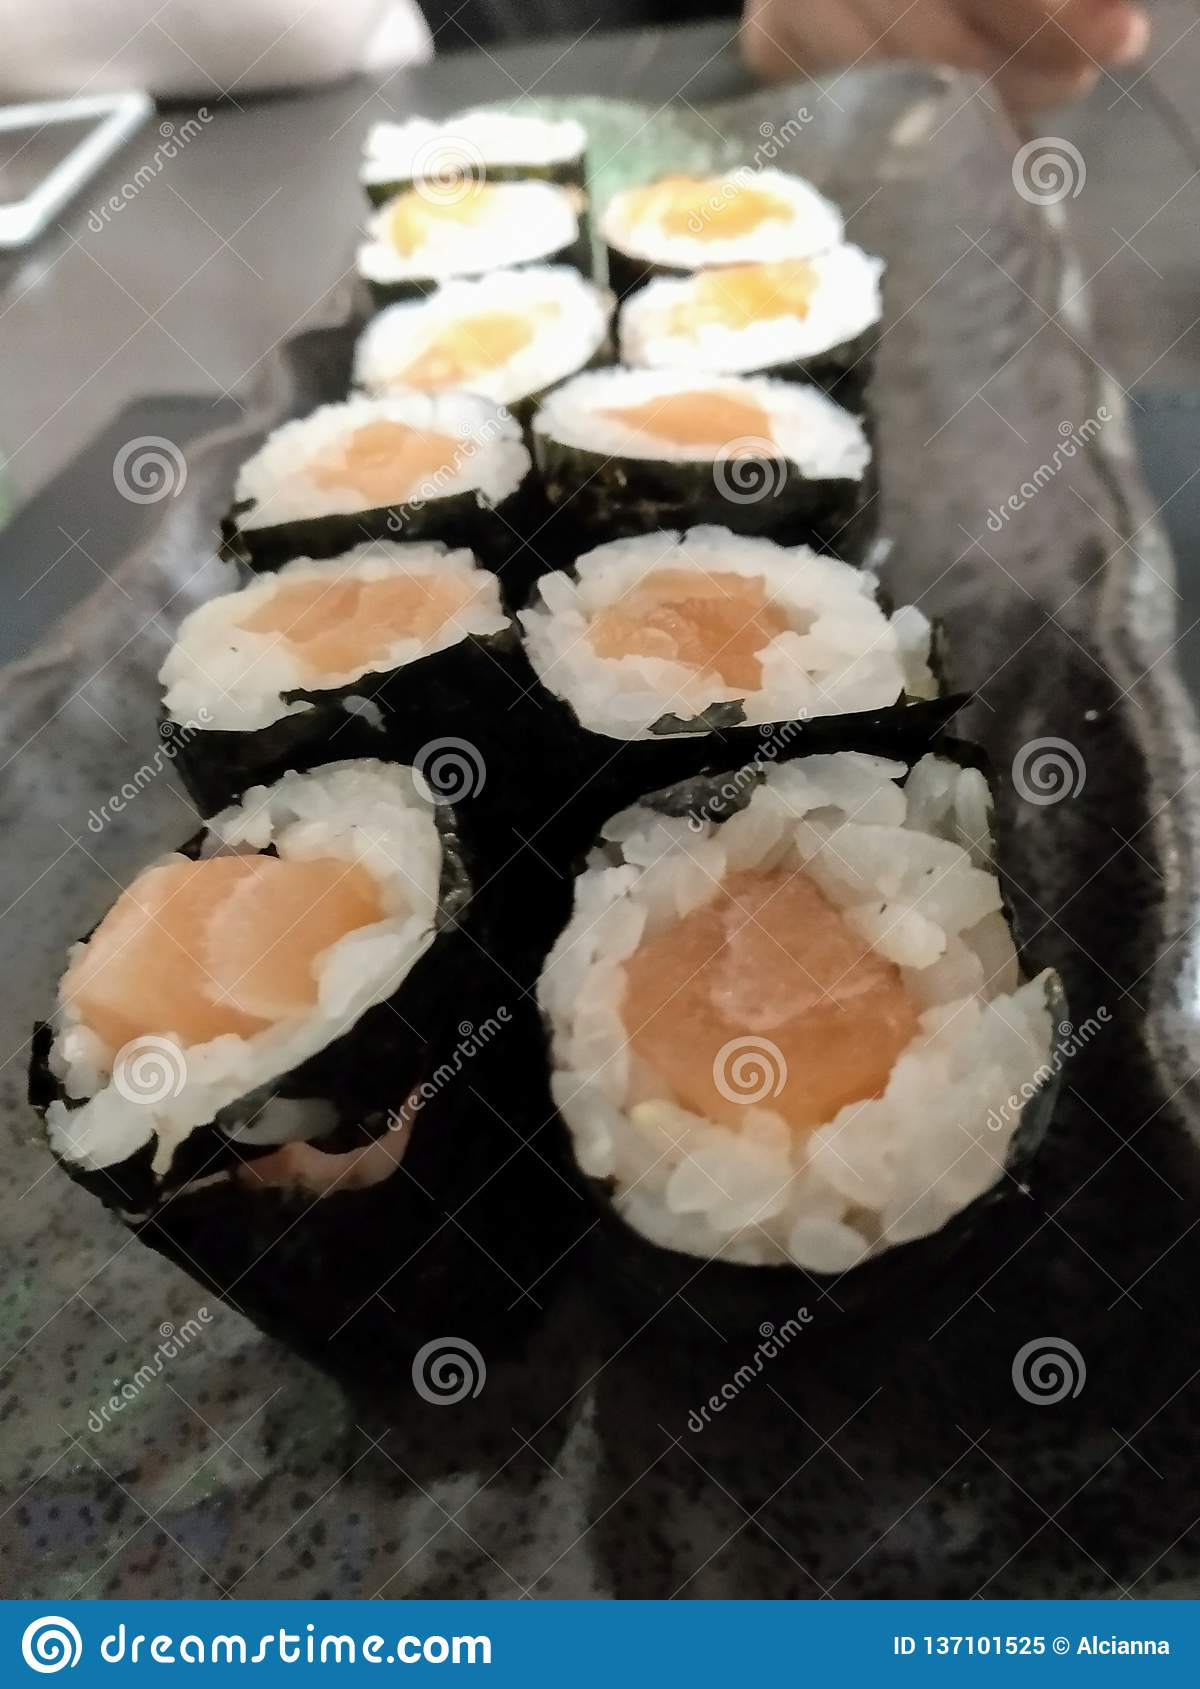 Salmon Maki At The Japanese Restaurant Stock Image Image